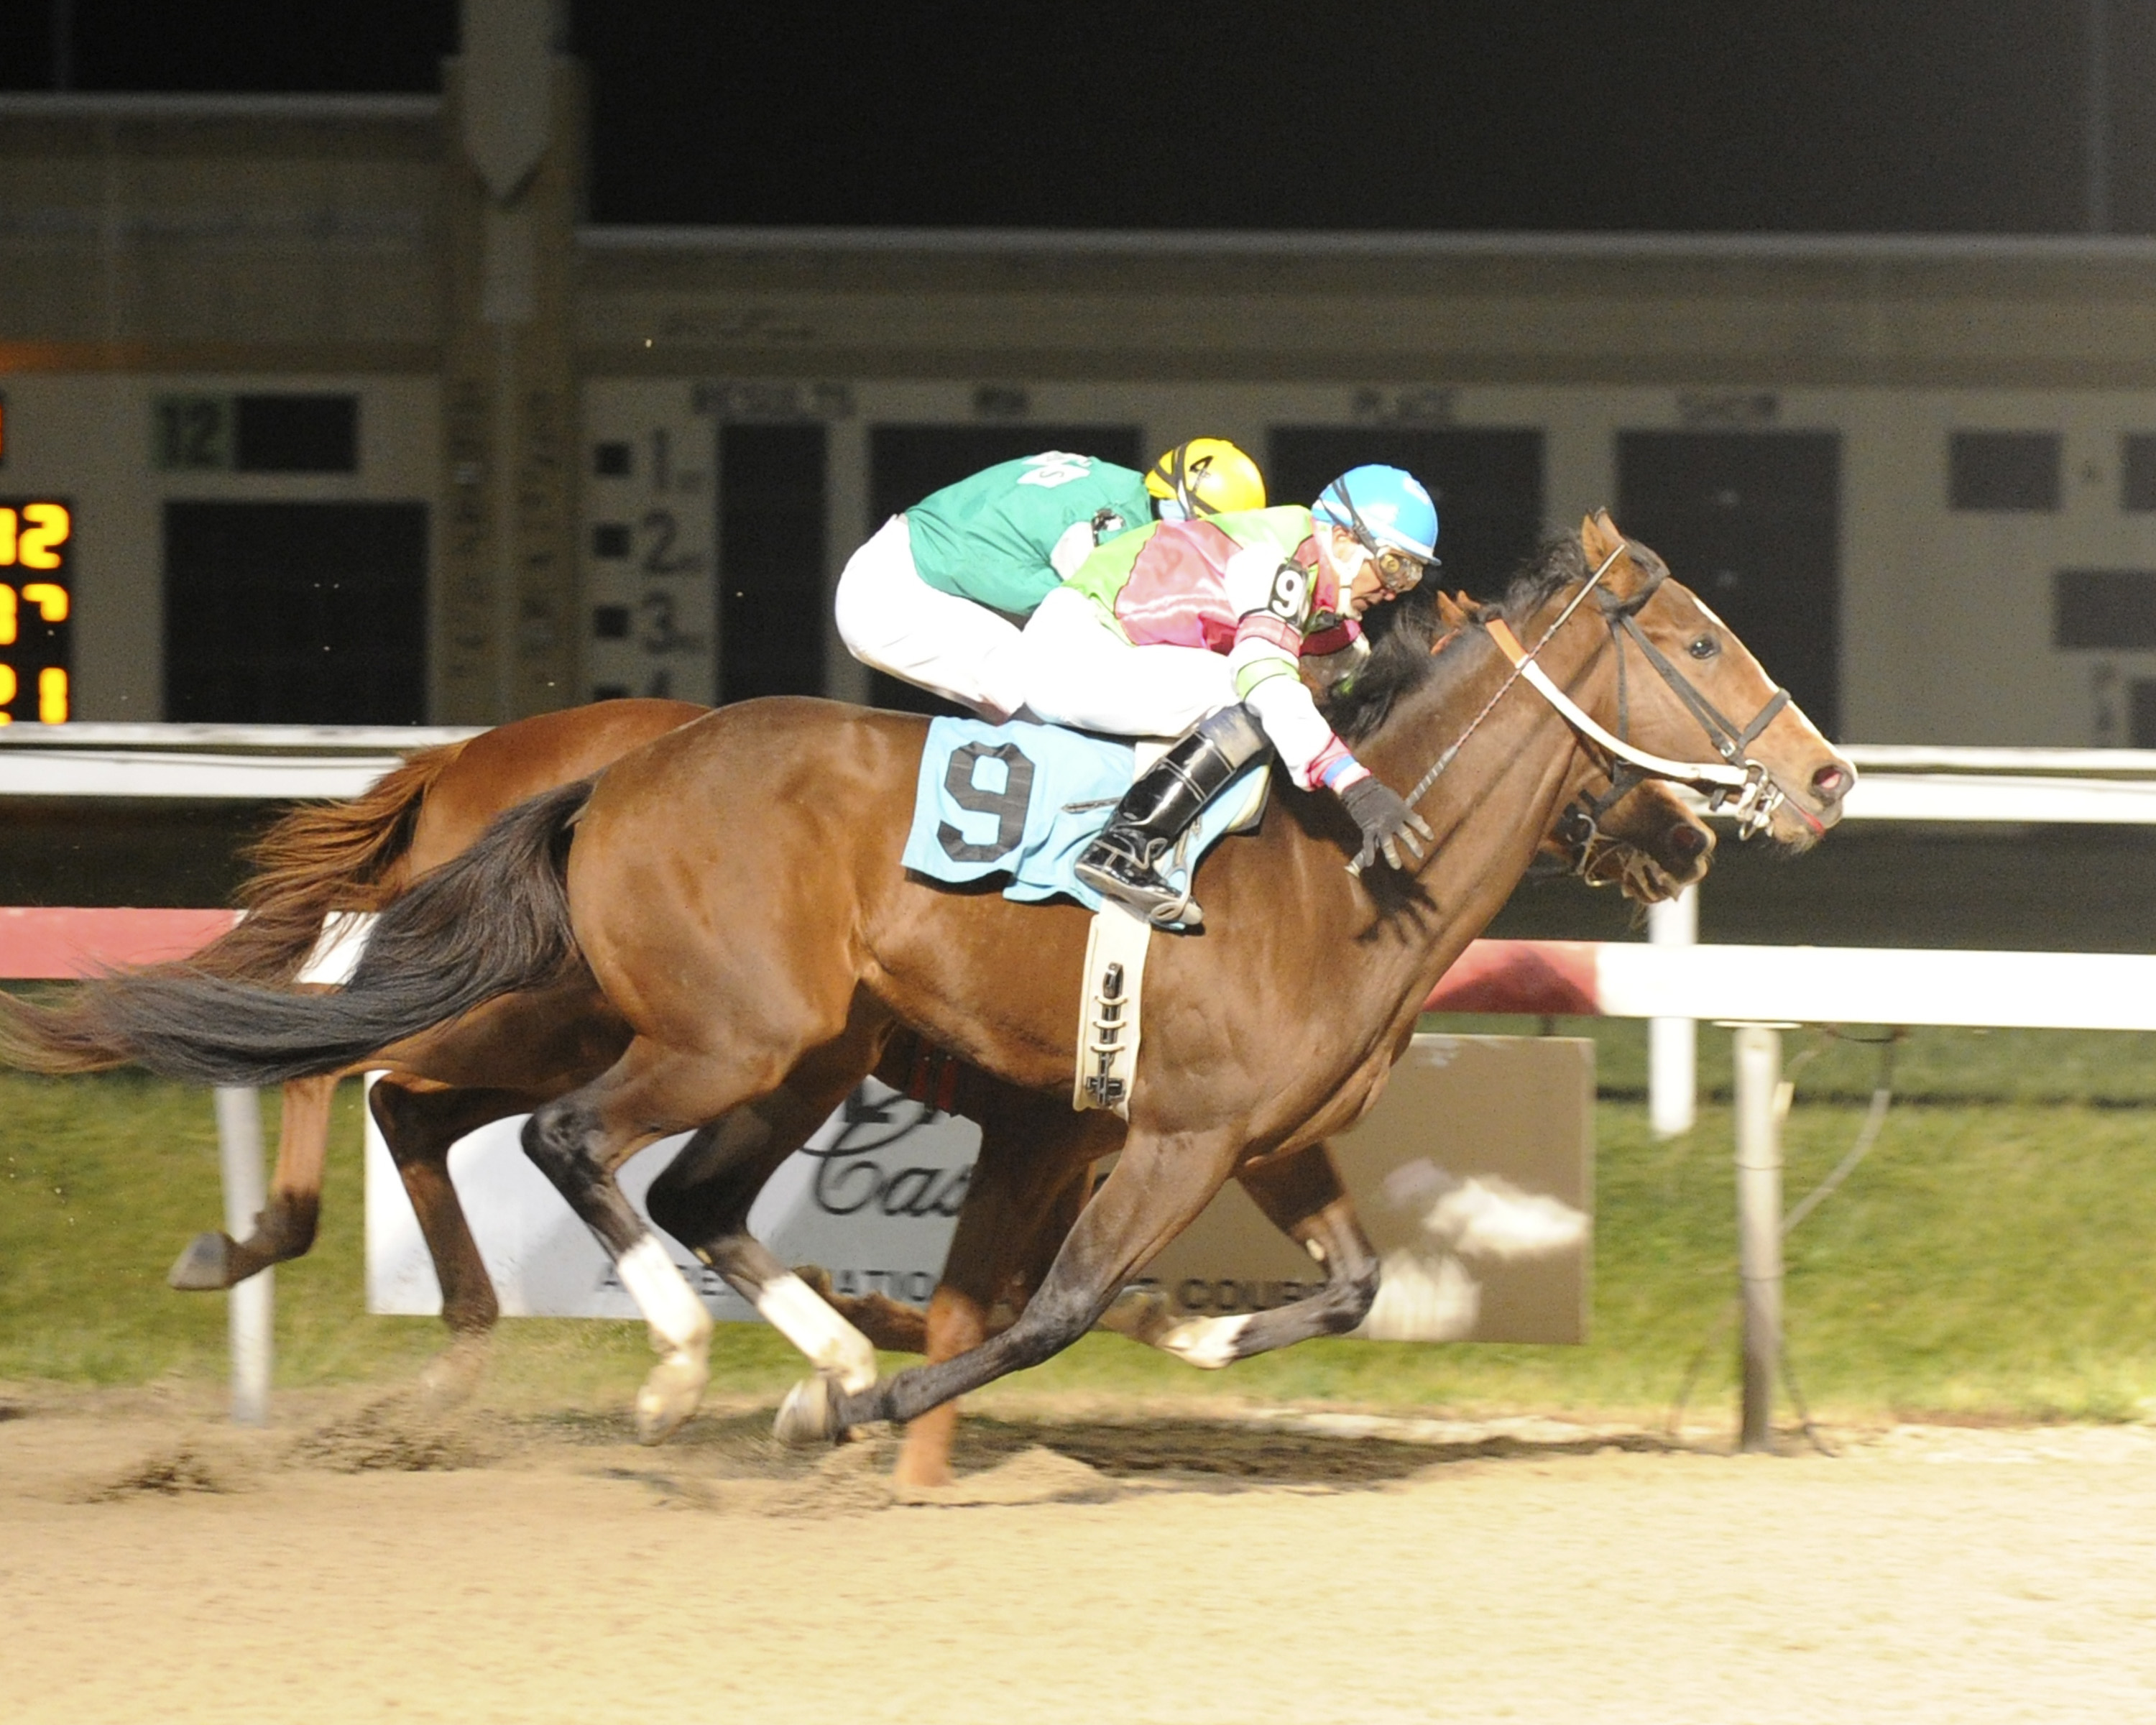 Peace of Green Rvf wins by a neck over Majestic Calling. Photo by B & D Photography.